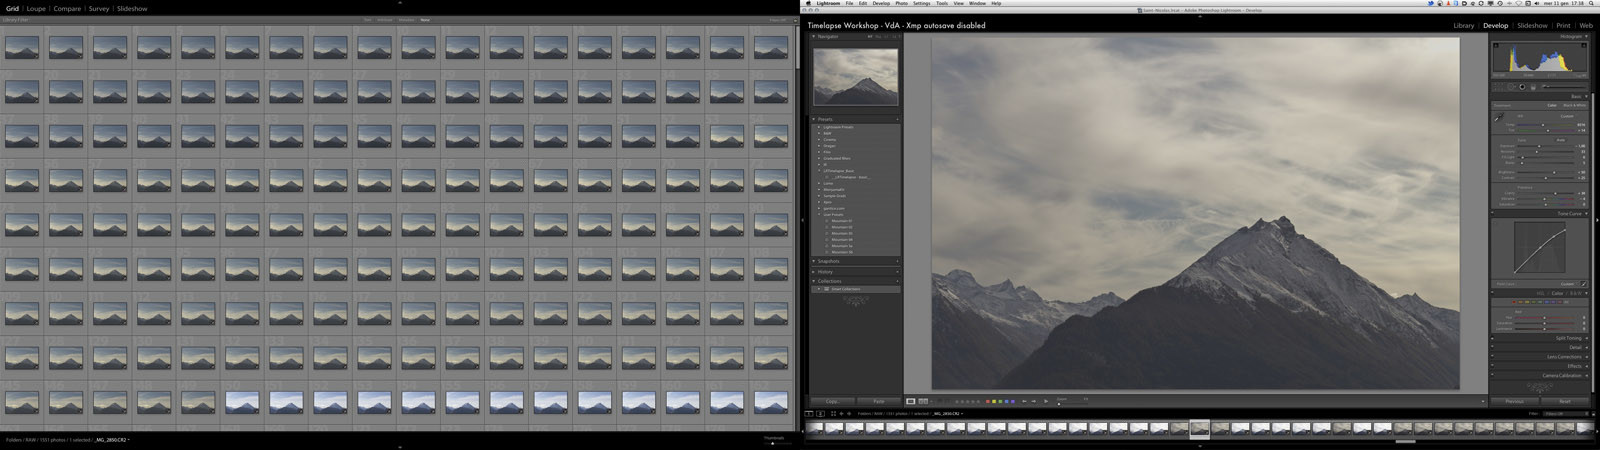 Workshop timelapse 2011 - Backstage - Lightroom